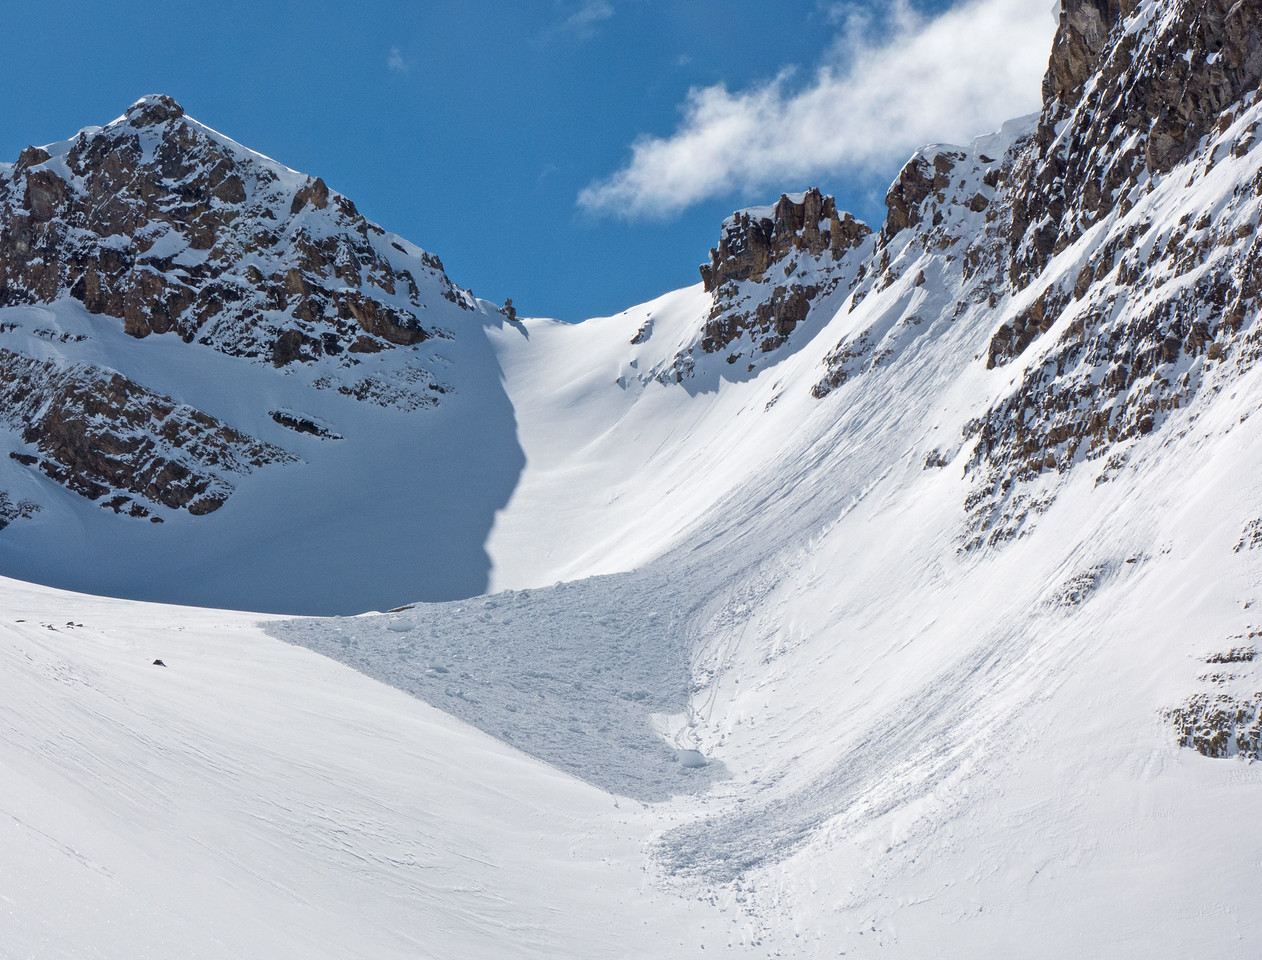 A very fresh cornice fall induced avalanche. Those things getting  big, and ripe!